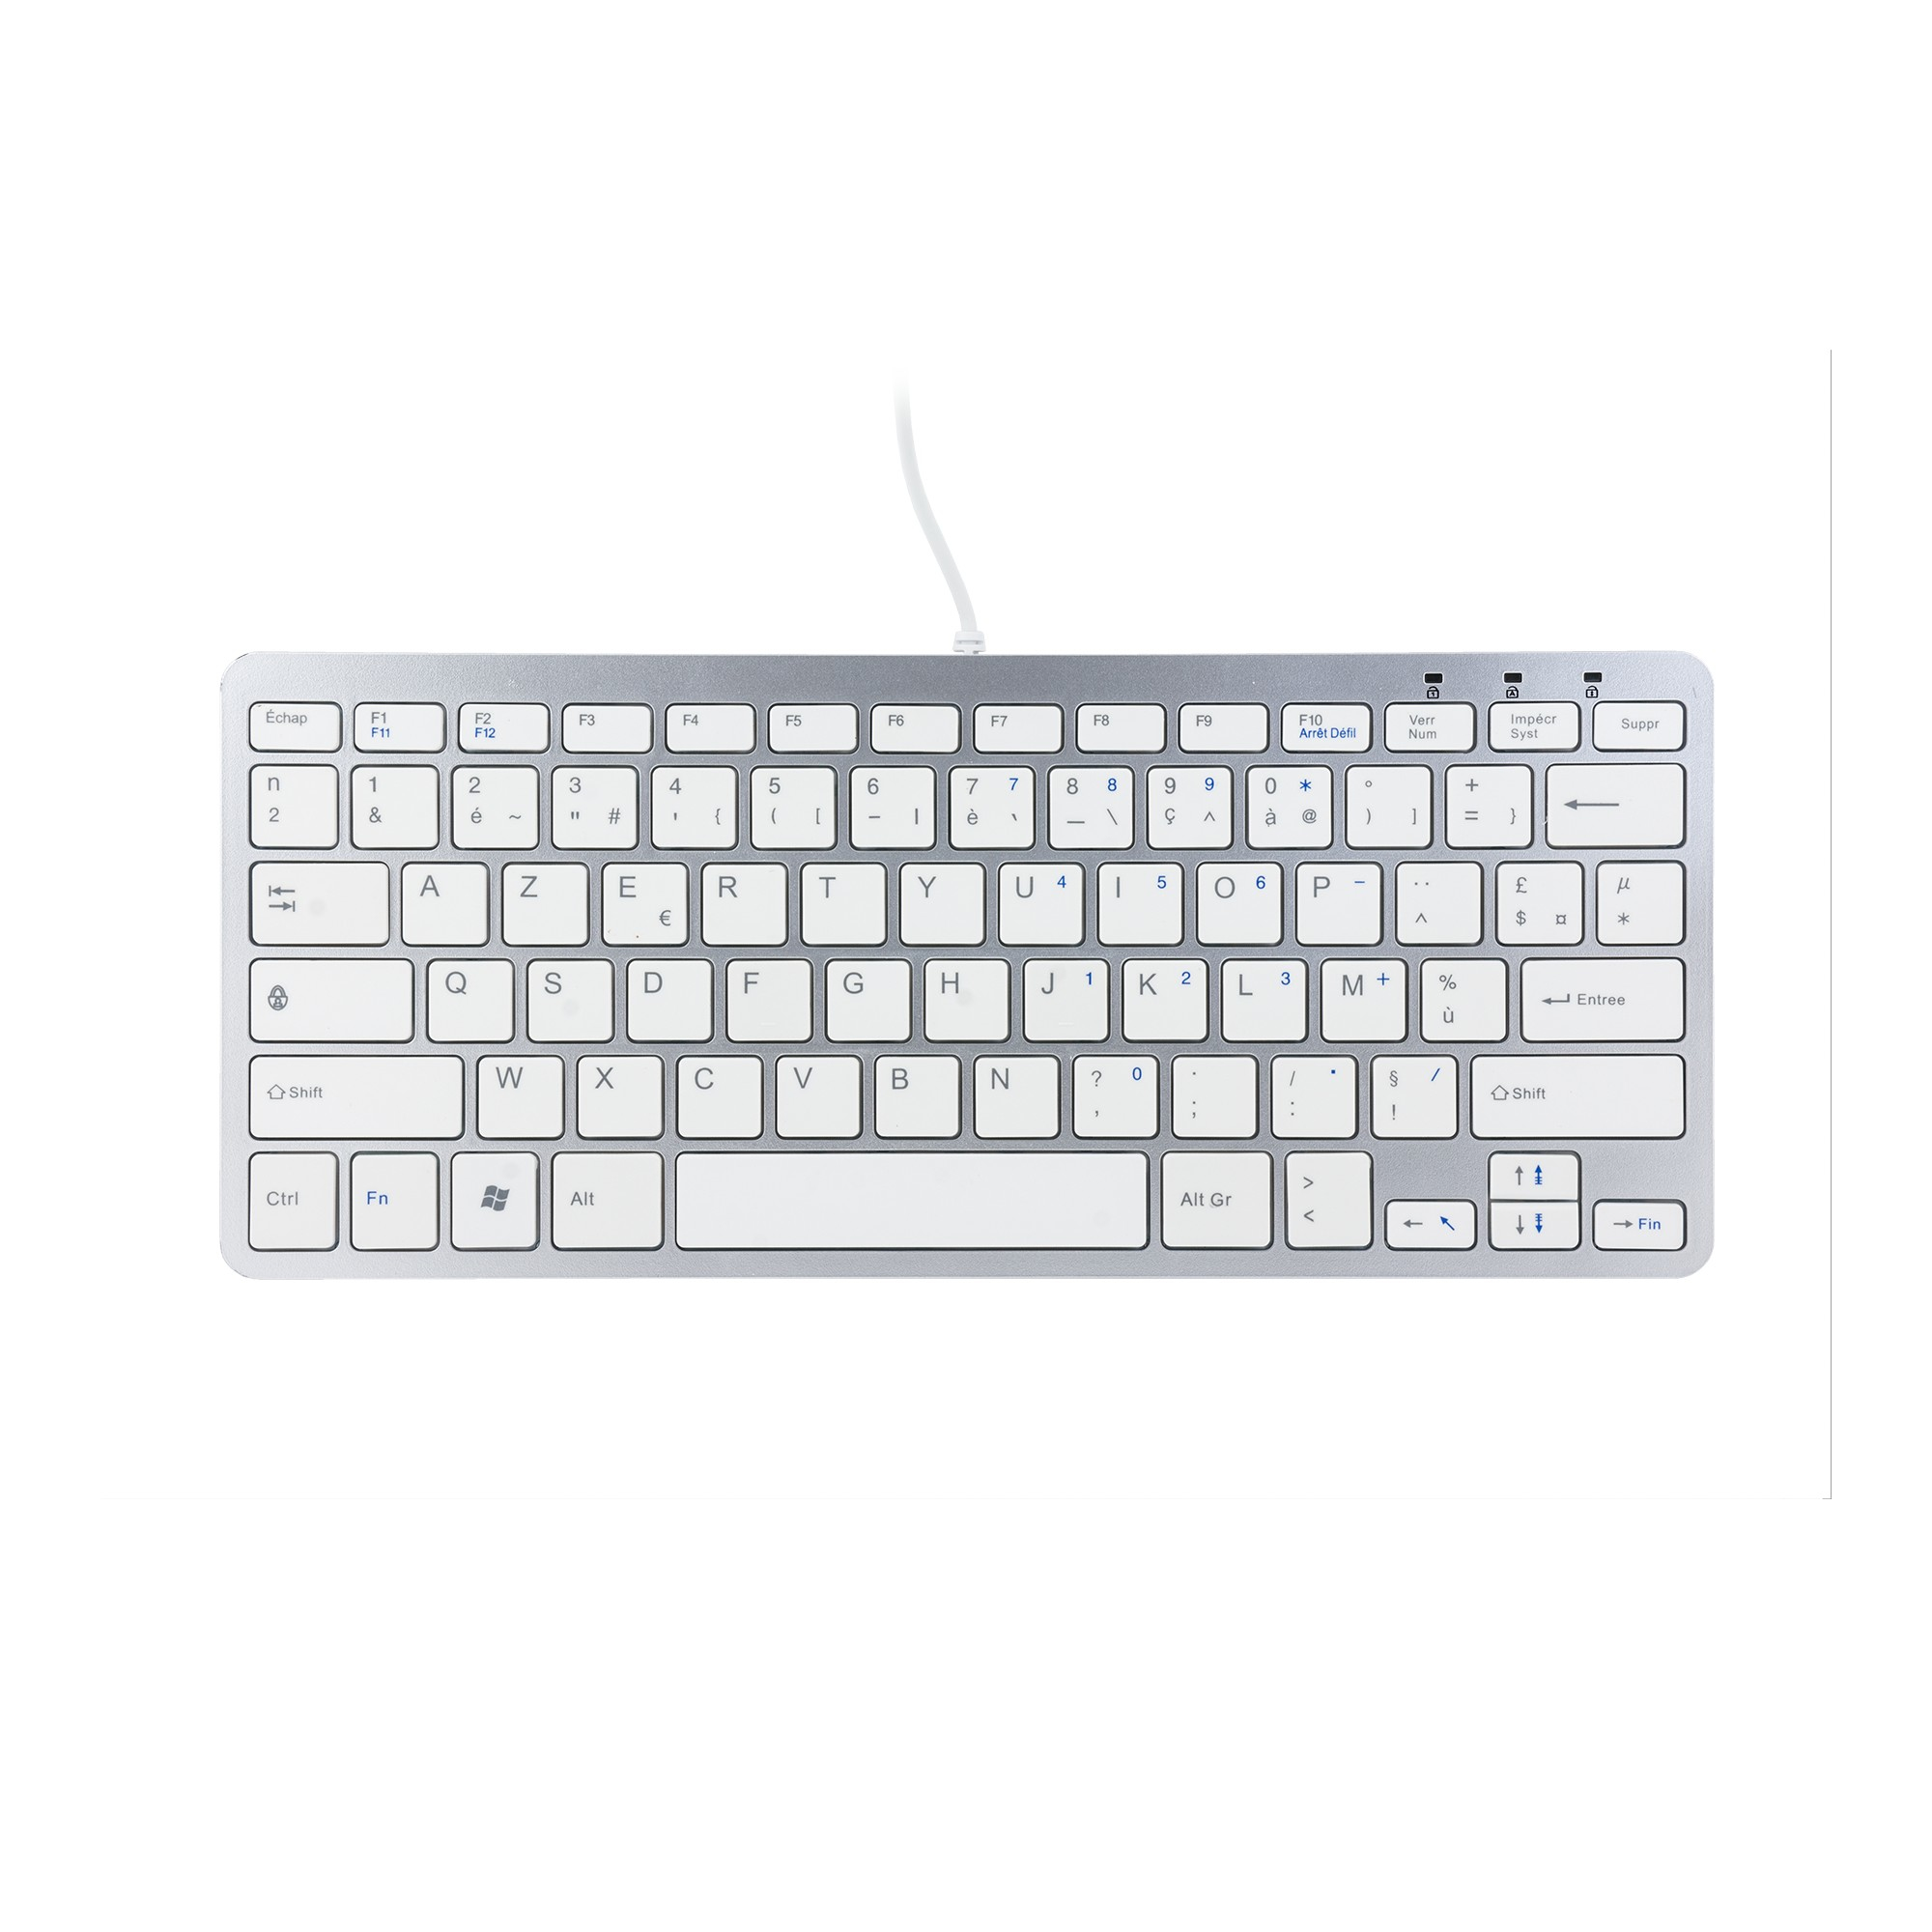 R-GO TOOLS RGOECAYW COMPACT KEYBOARD, AZERTY (FR), WHITE, WIRED